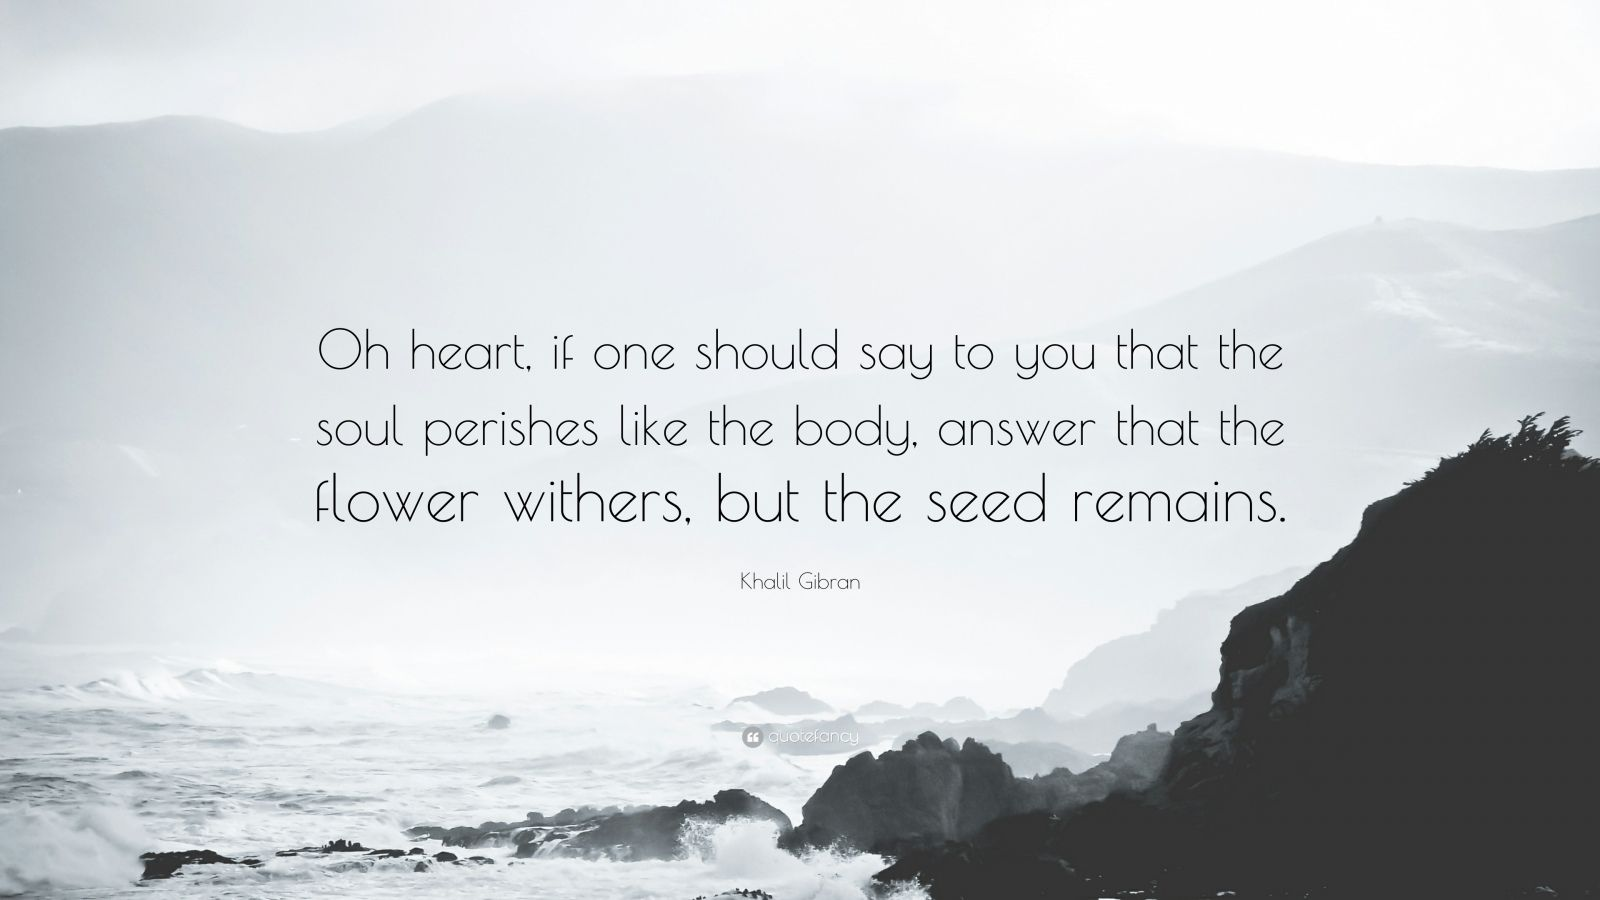 """Khalil Gibran Quote: """"Oh heart, if one should say to you that the soul perishes like the body, answer that the flower withers, but the seed remains."""""""